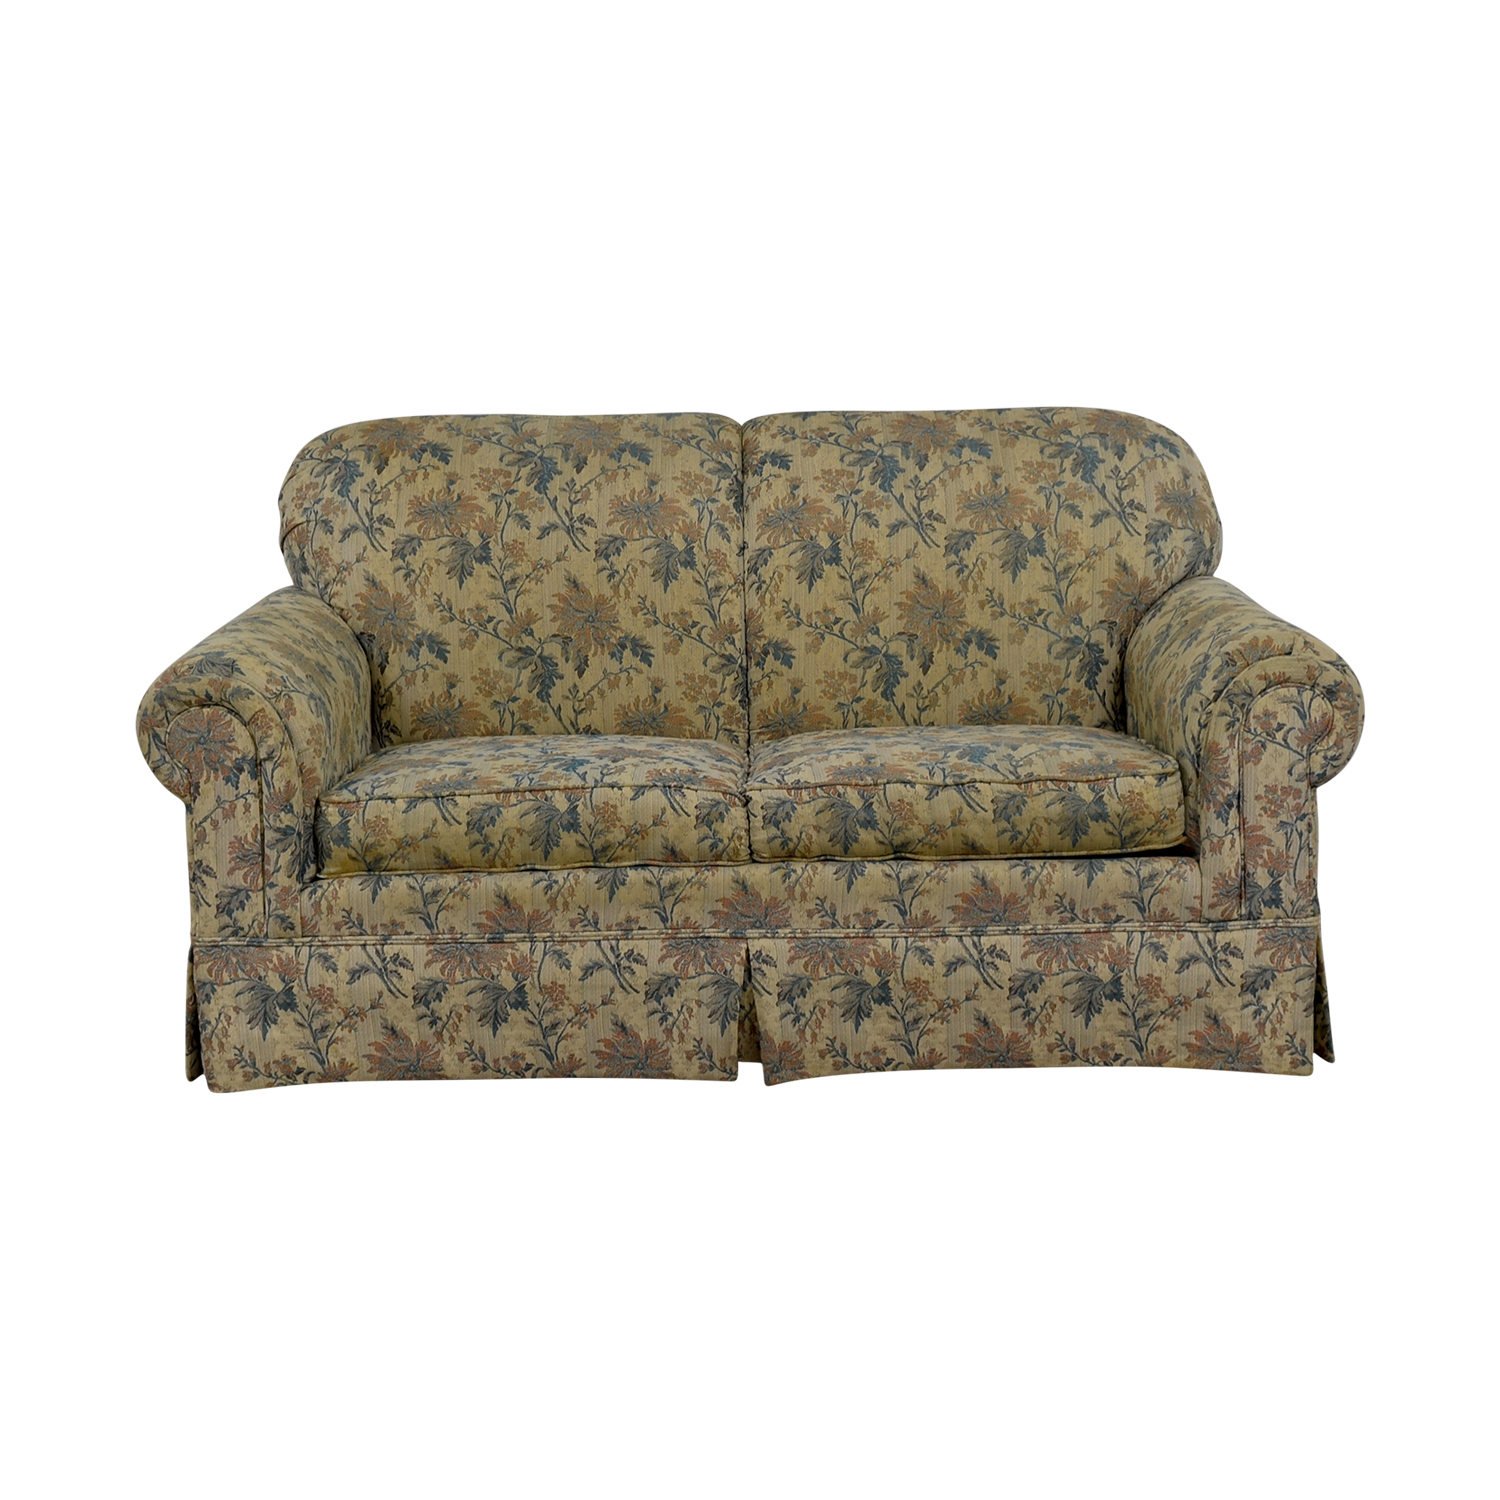 shop Broyhill Upholstery Furniture Broyhill Upholstery Furniture Yellow Flower Fabric Loveseat online